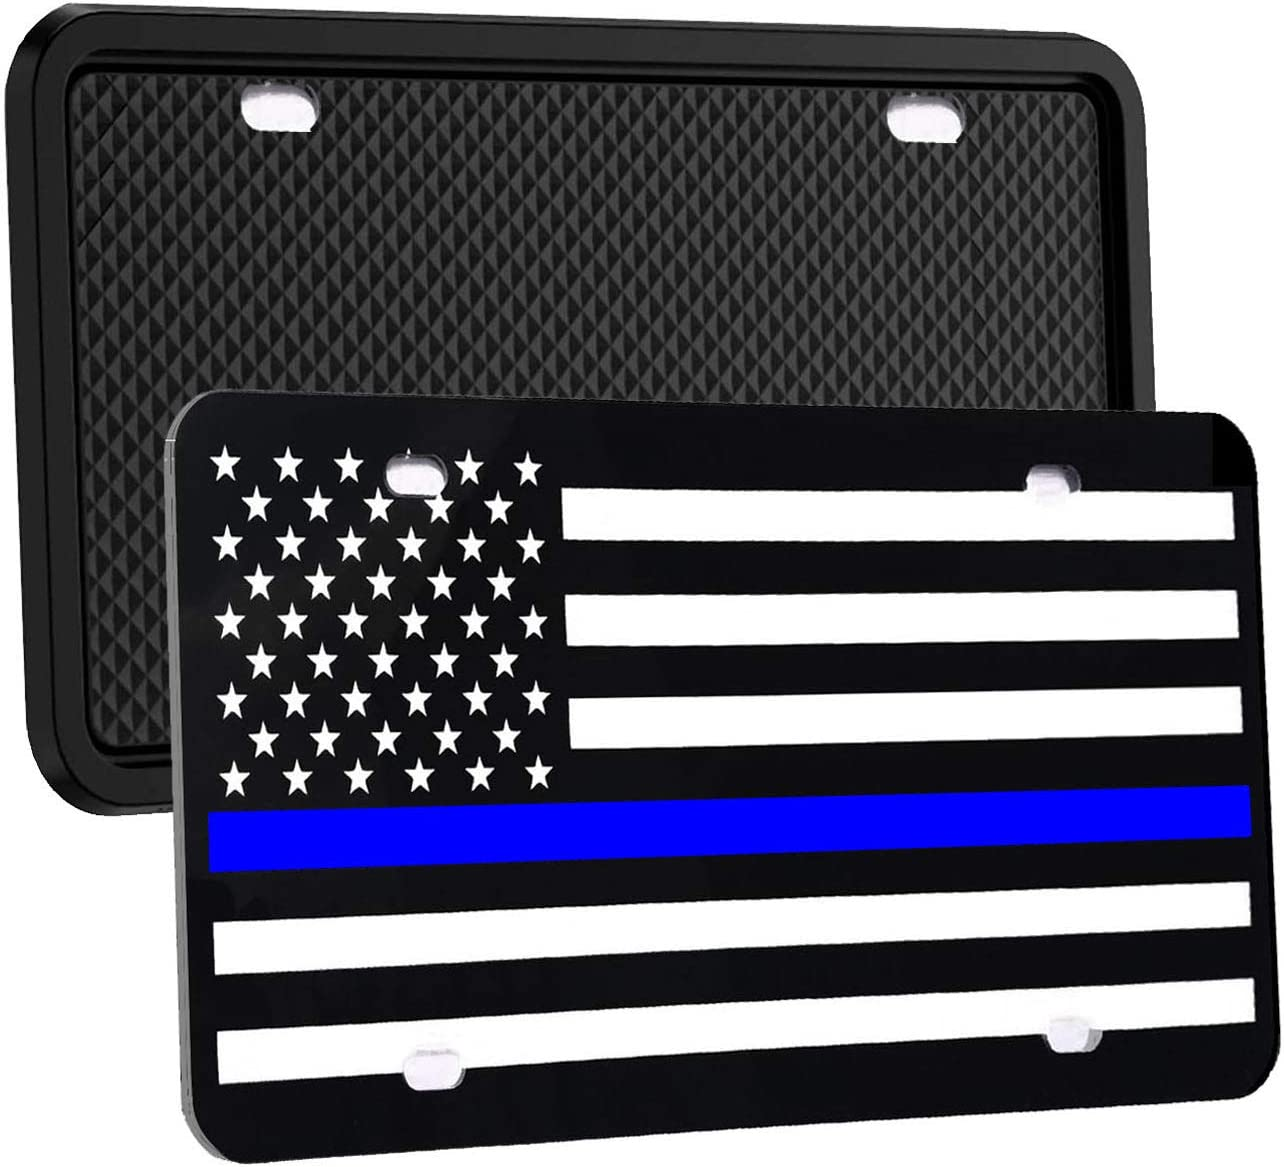 Silicone License Plate Frame 2 in 1,Blue Lives Matter,Novelty Auto Car Tag and Rattle-Proof Weather-Proof. Synrroe USA Flag License Plate